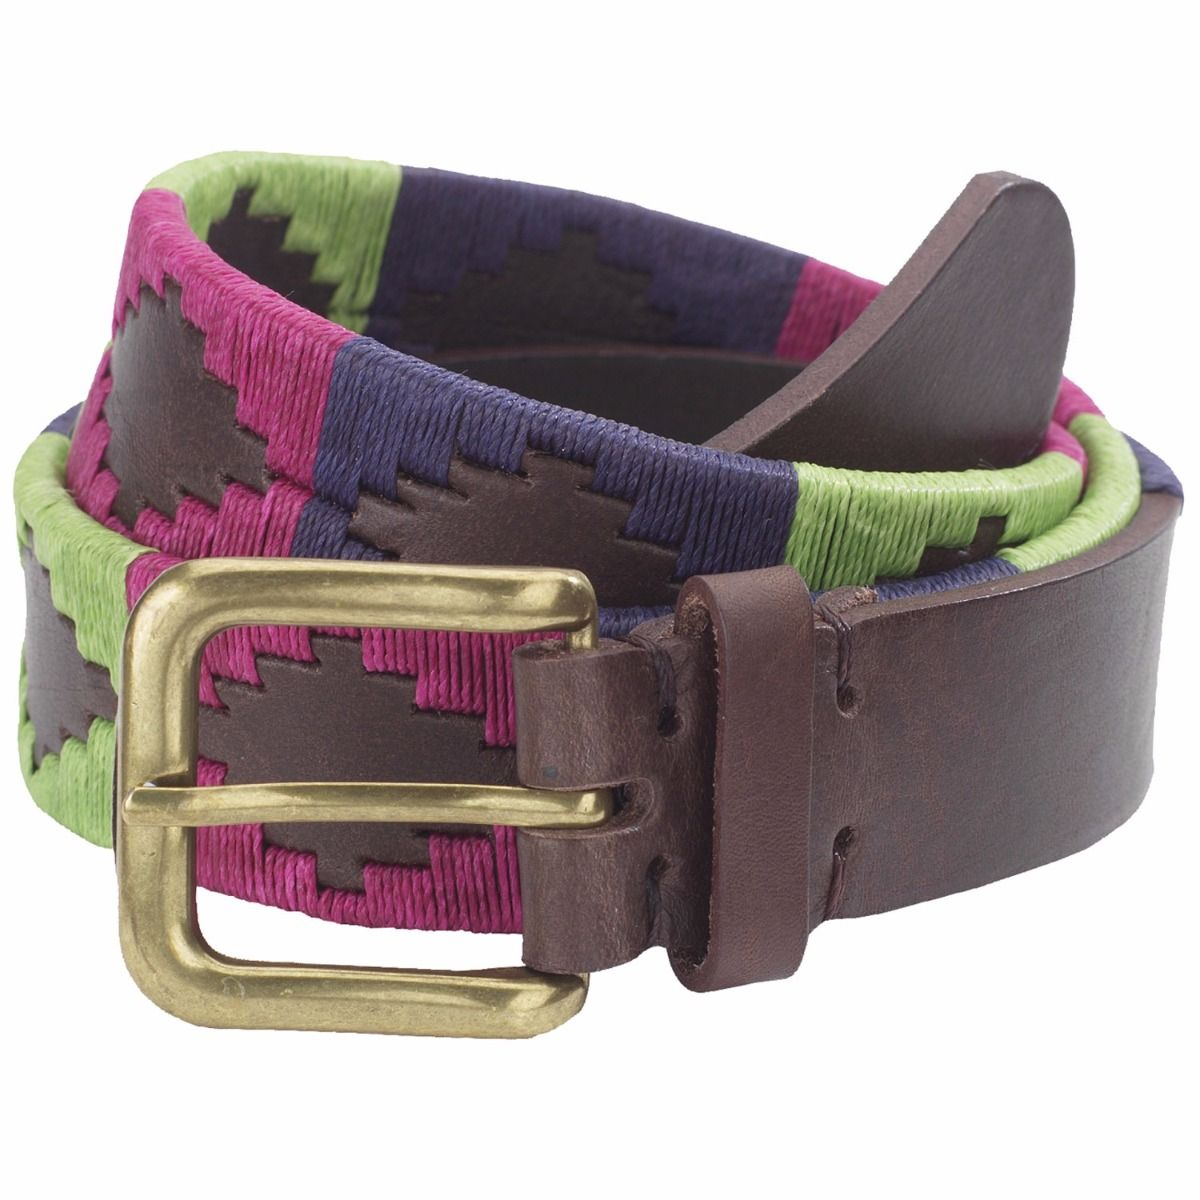 Our Ladies Polo Belt in Berry/Navy/Green